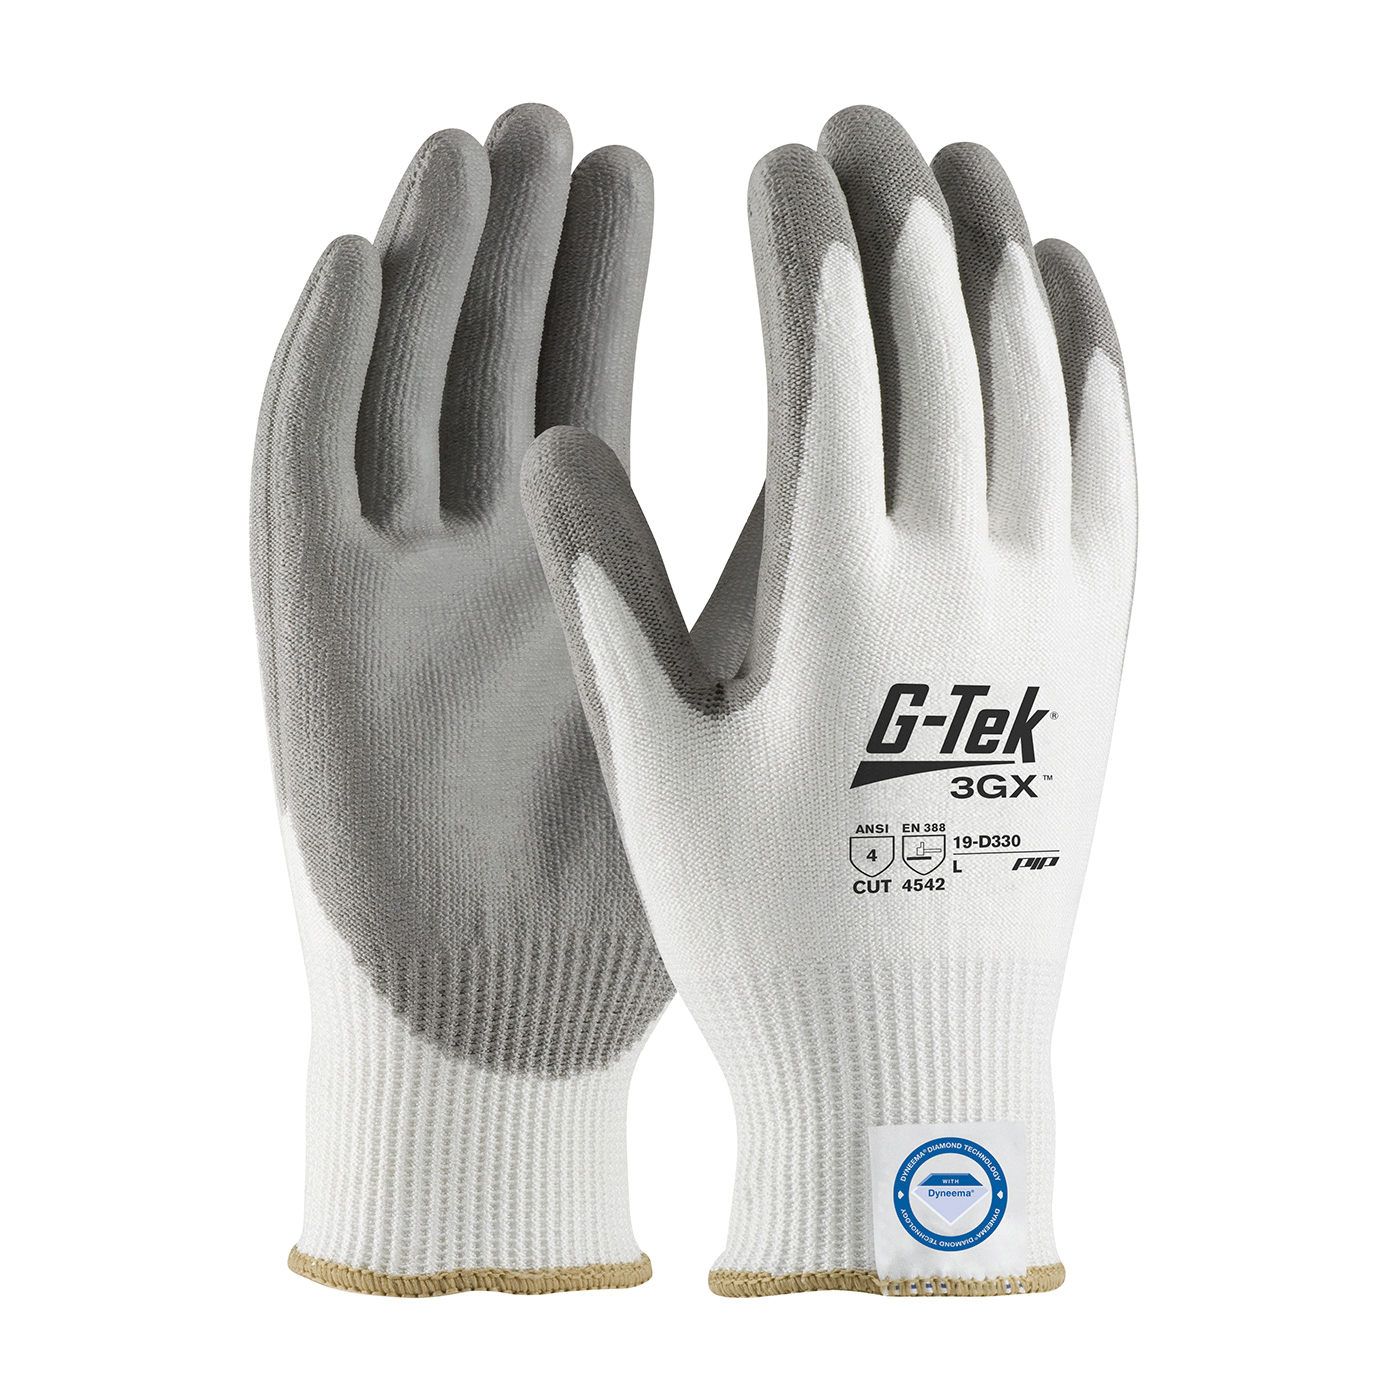 G-Tek® MaxiFlex® Elite 34-274/S Cut Resistant Gloves, Seamless Style, S, Nitrile Palm, Blue, Continuous Knit Wrist Cuff, Resists: Abrasion, Cut, Puncture and Tear, Nylon/Lycra® Lining